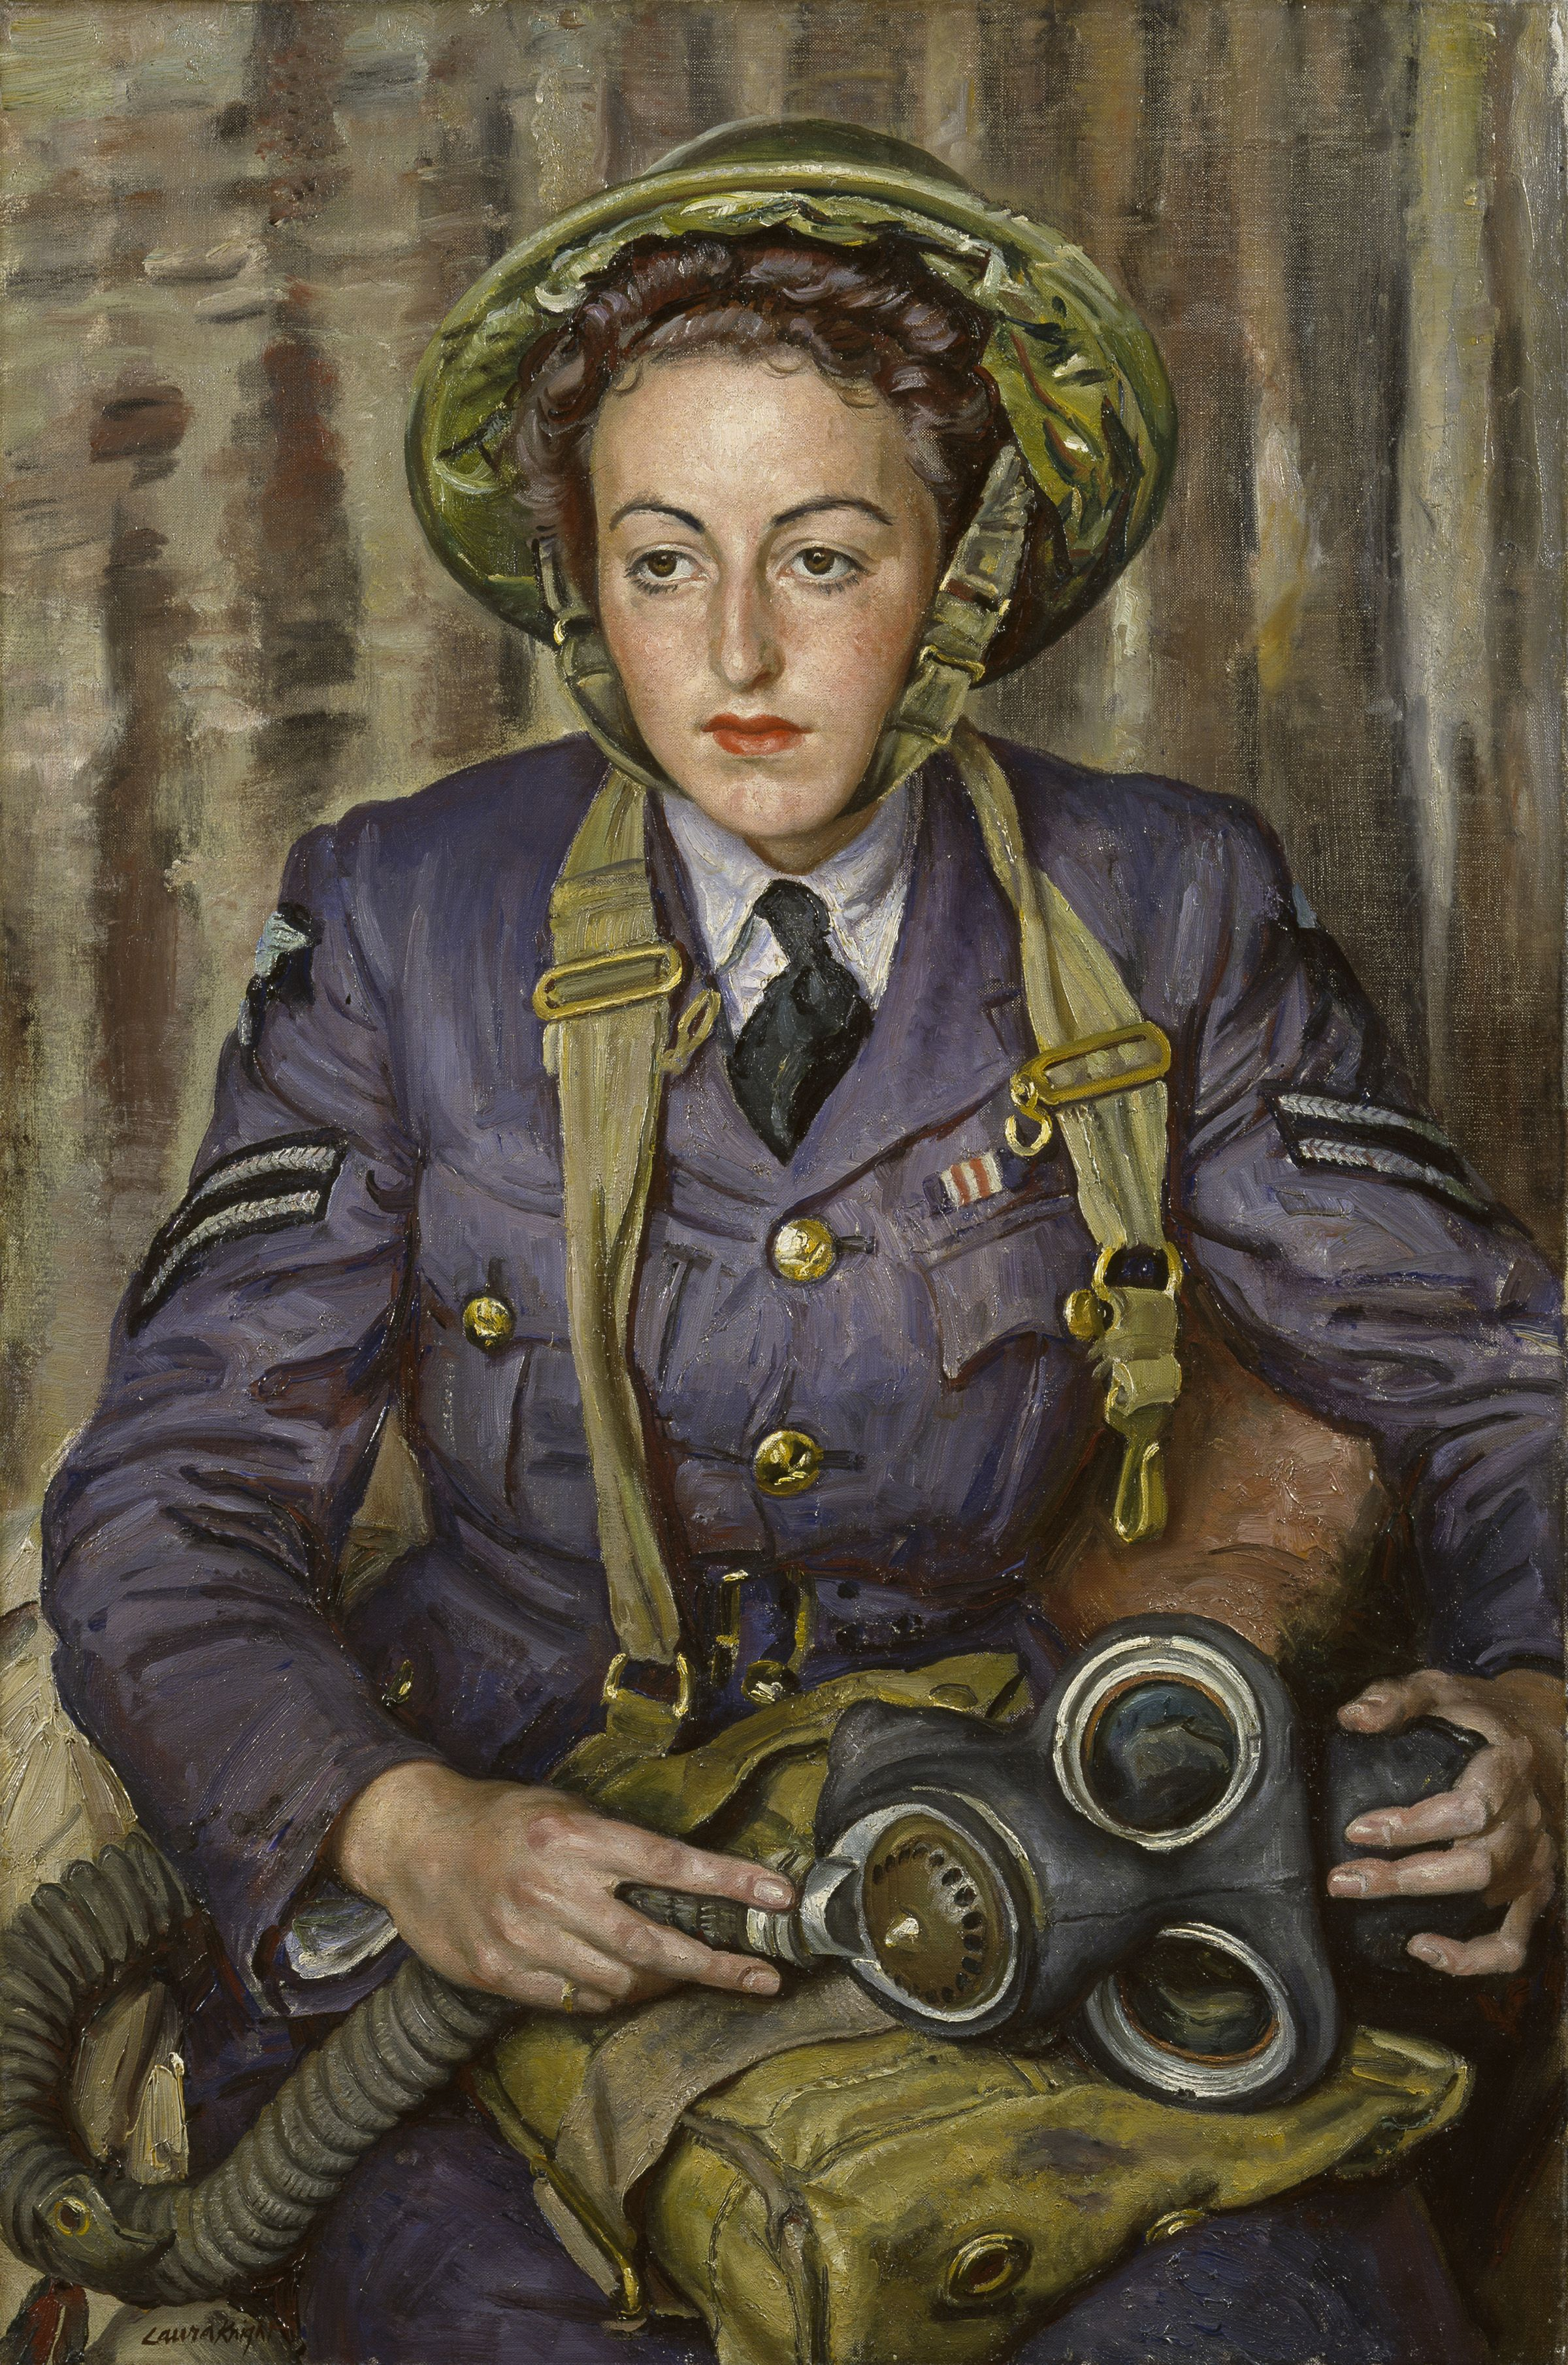 'Corporal J. Robins, Women's Auxiliary Air Force', 1941 by Dame Laura Knight